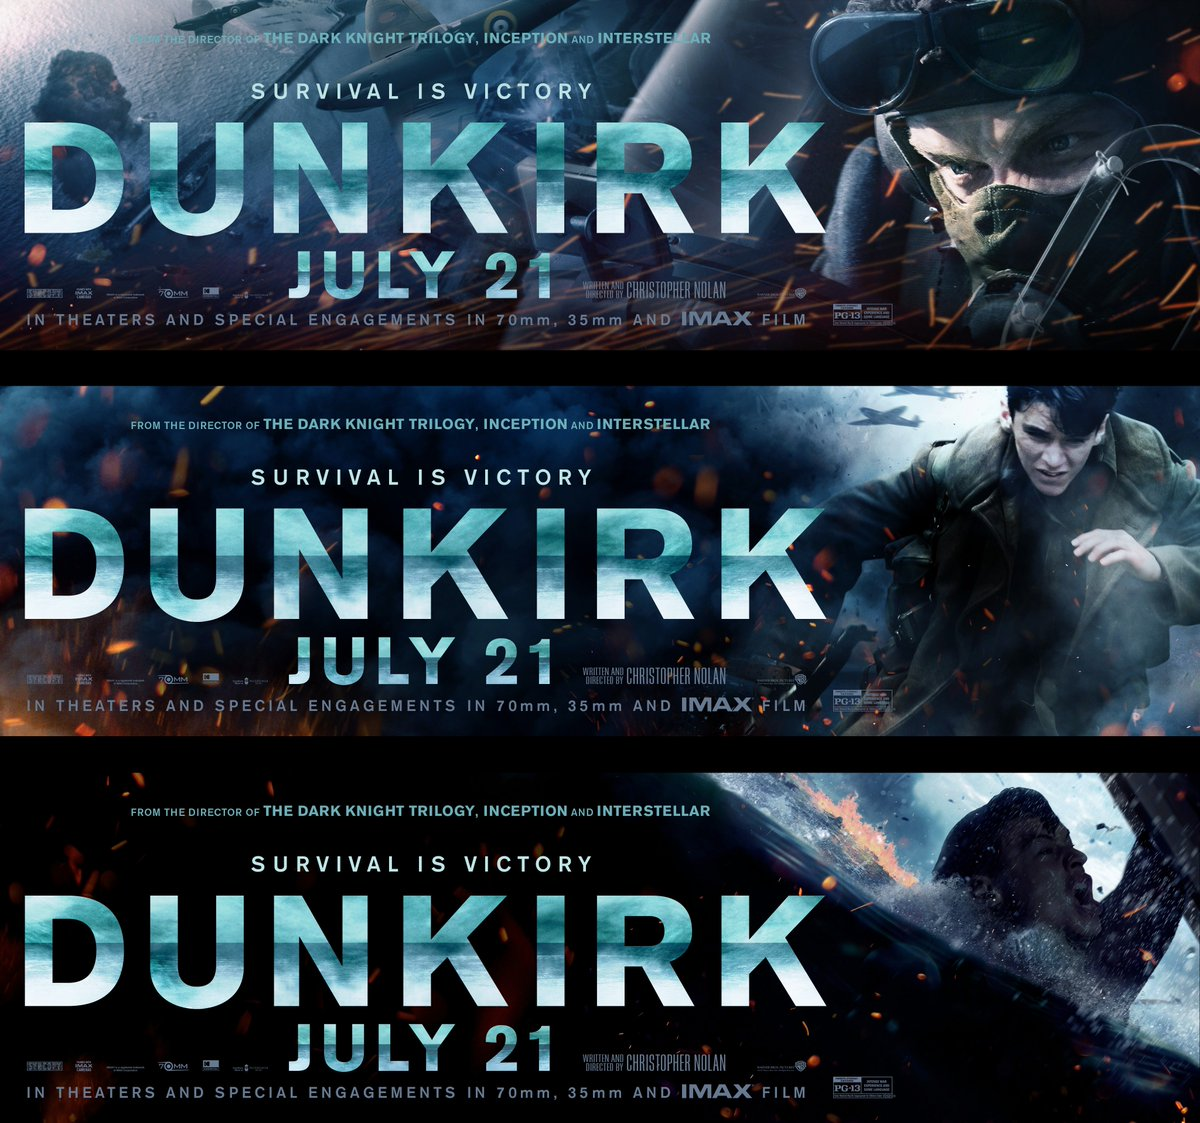 test Twitter Media - RT @dunkirkmovie: Survival is victory. Go to https://t.co/ipMiWw15vV for exclusive #Dunkirk content. https://t.co/QGUOW4vZWs